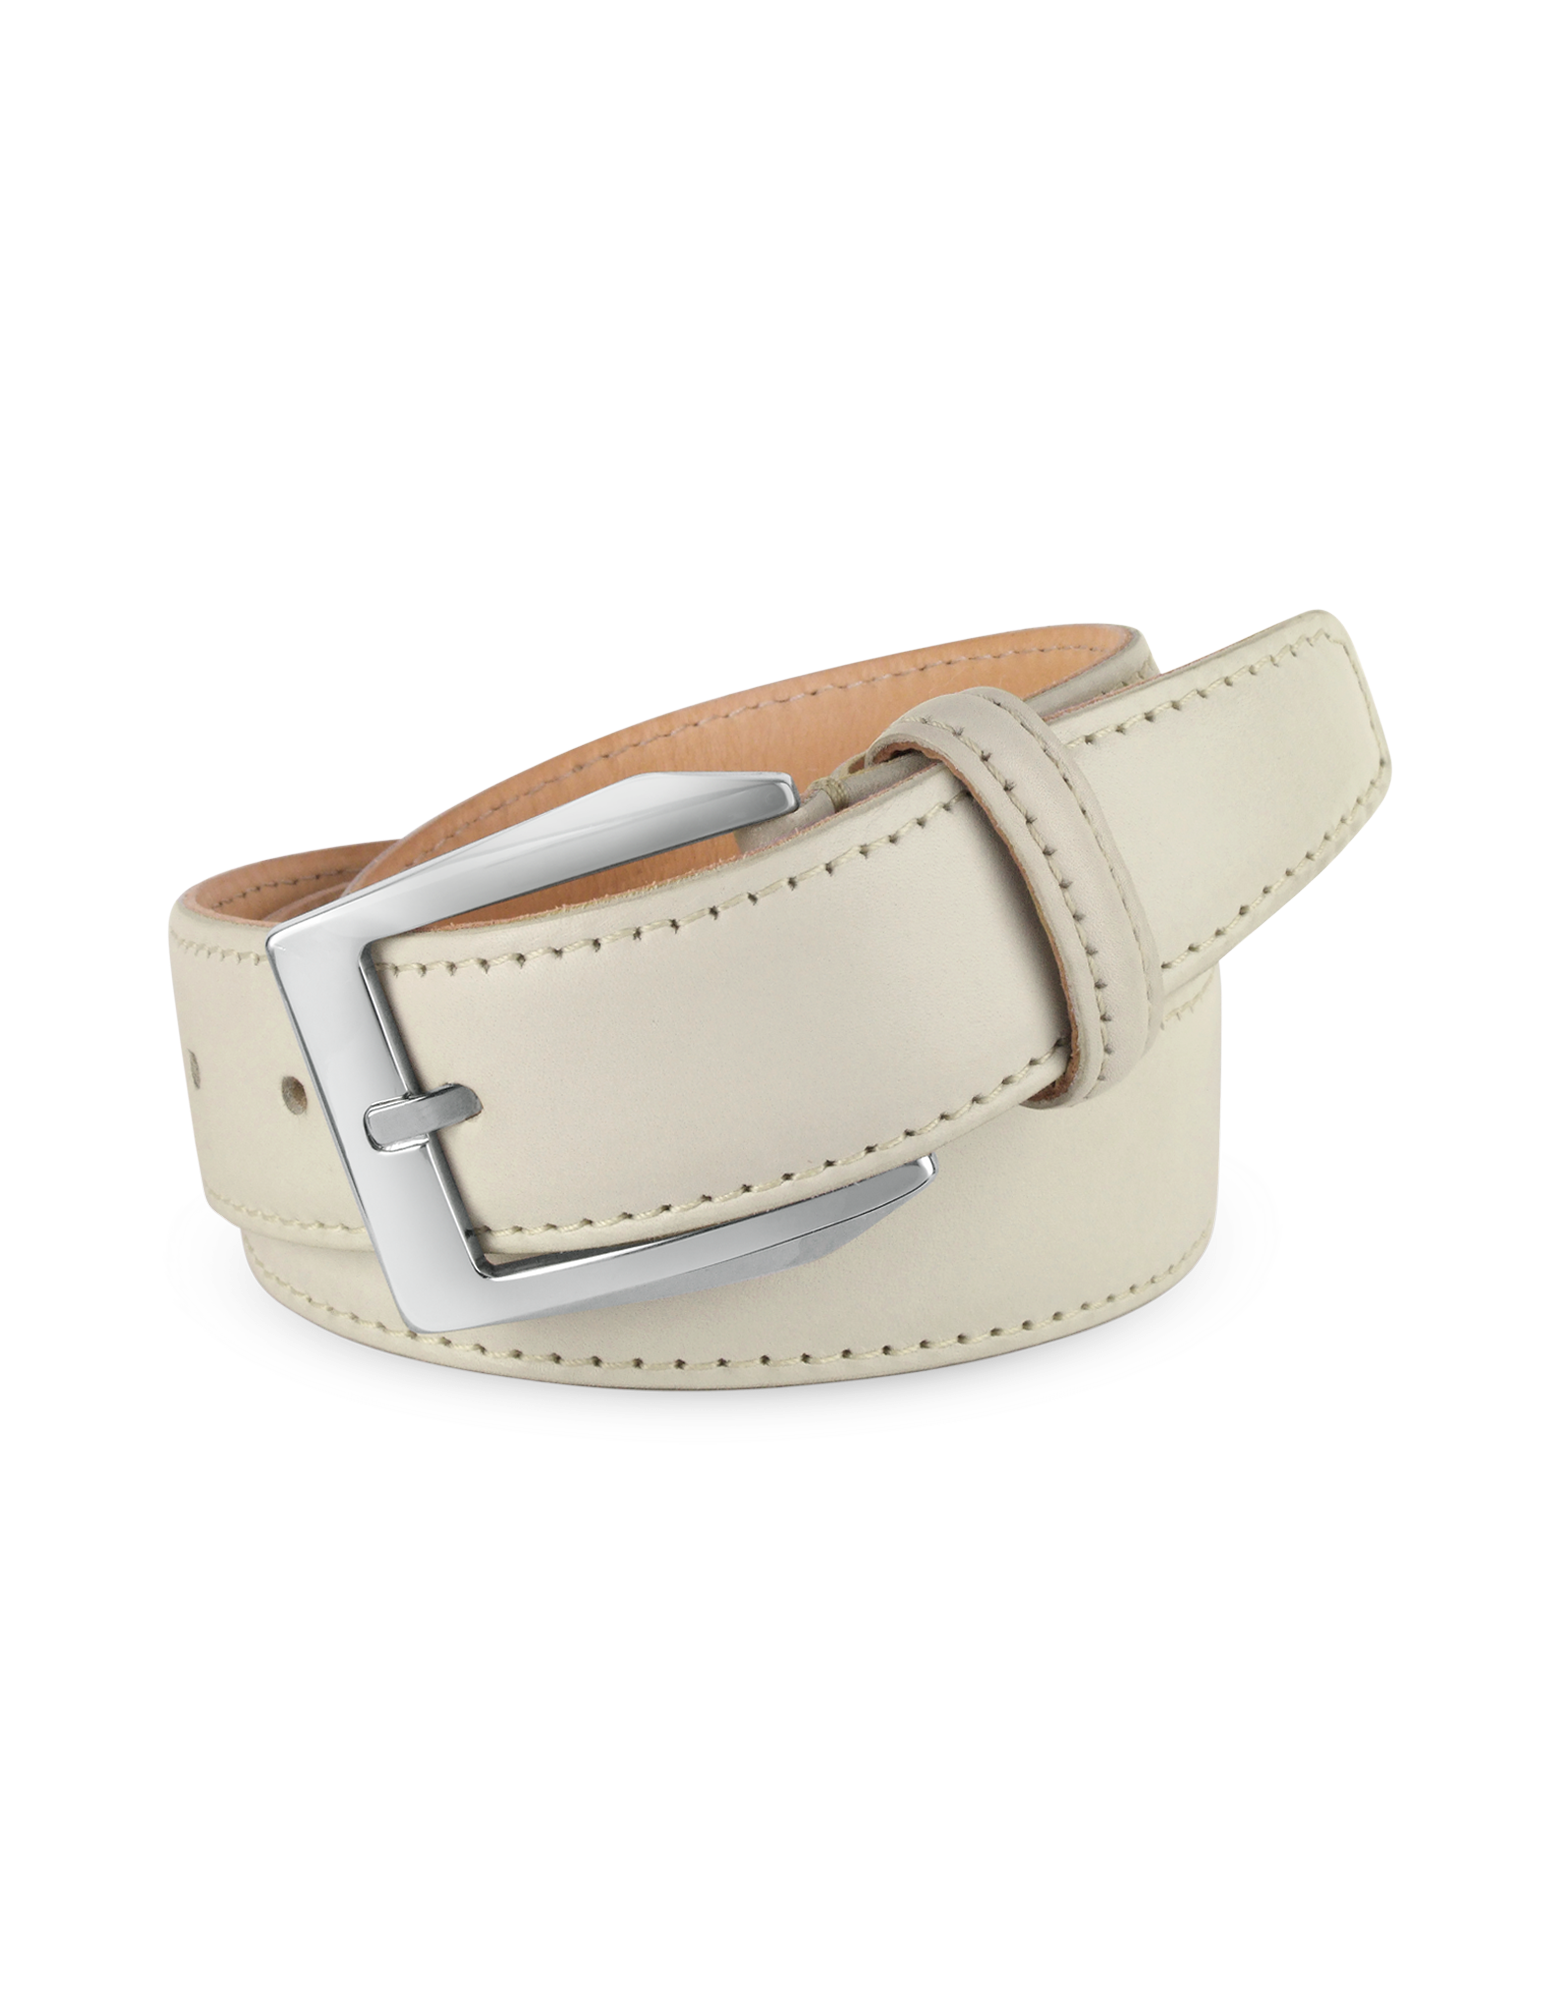 Image of Men's White Hand Painted Italian Leather Belt